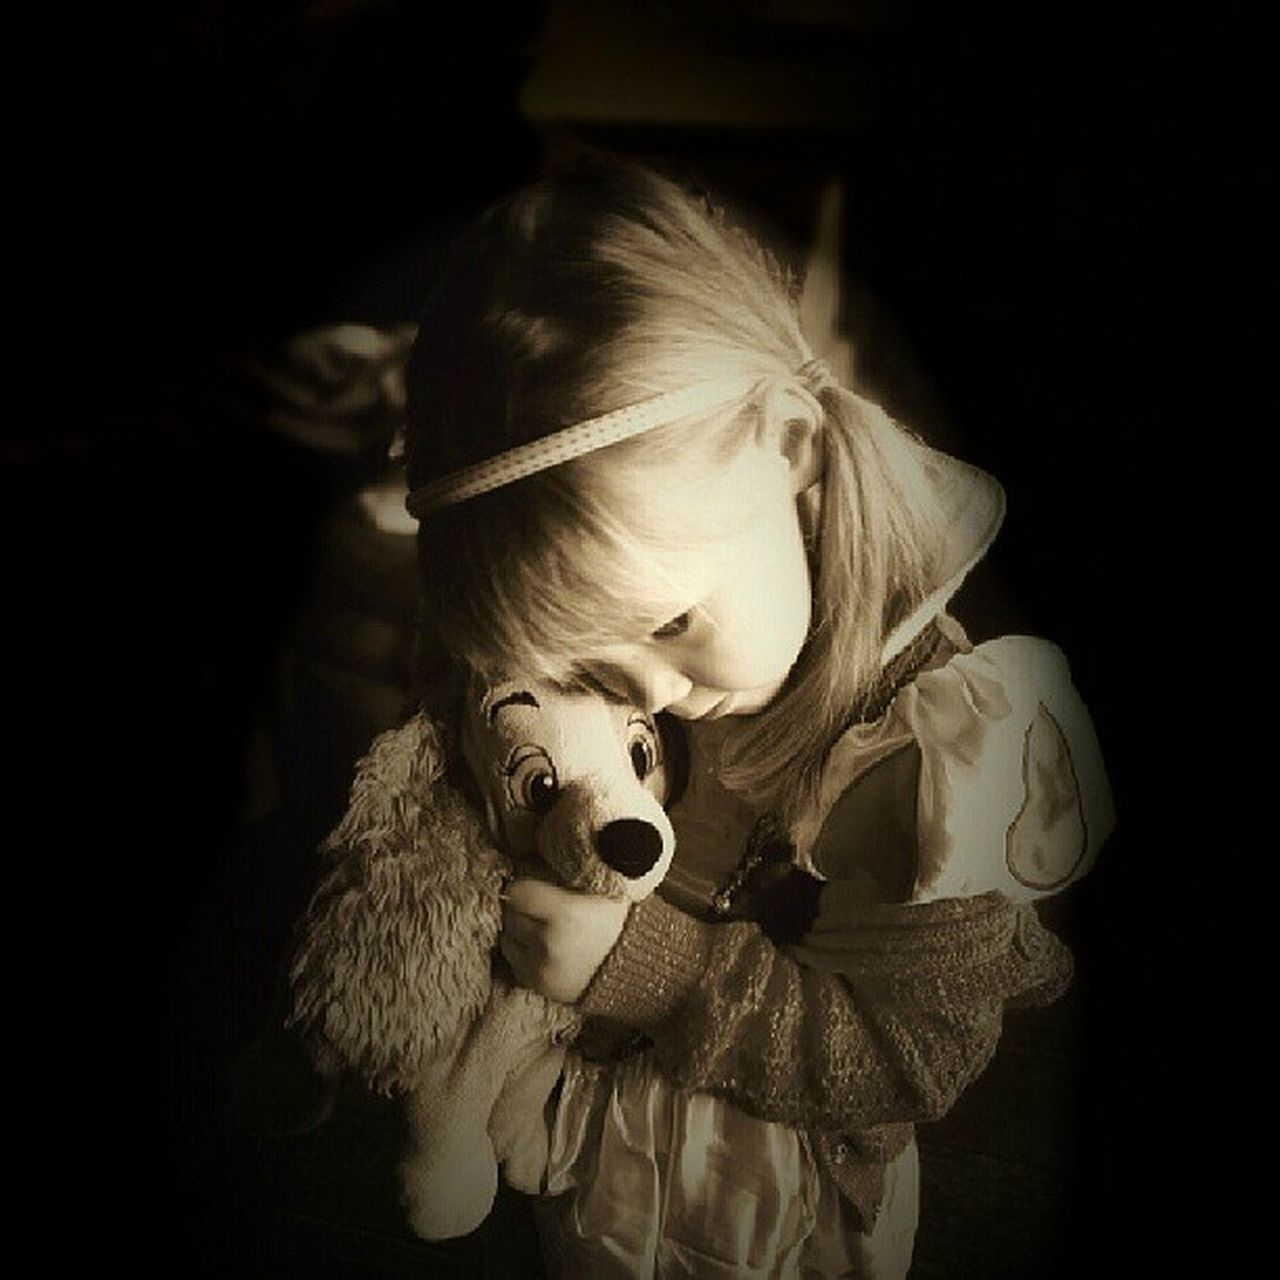 childhood, child, one girl only, girls, stuffed toy, one person, blond hair, children only, teddy bear, indoors, spooky, black background, people, close-up, halloween, day